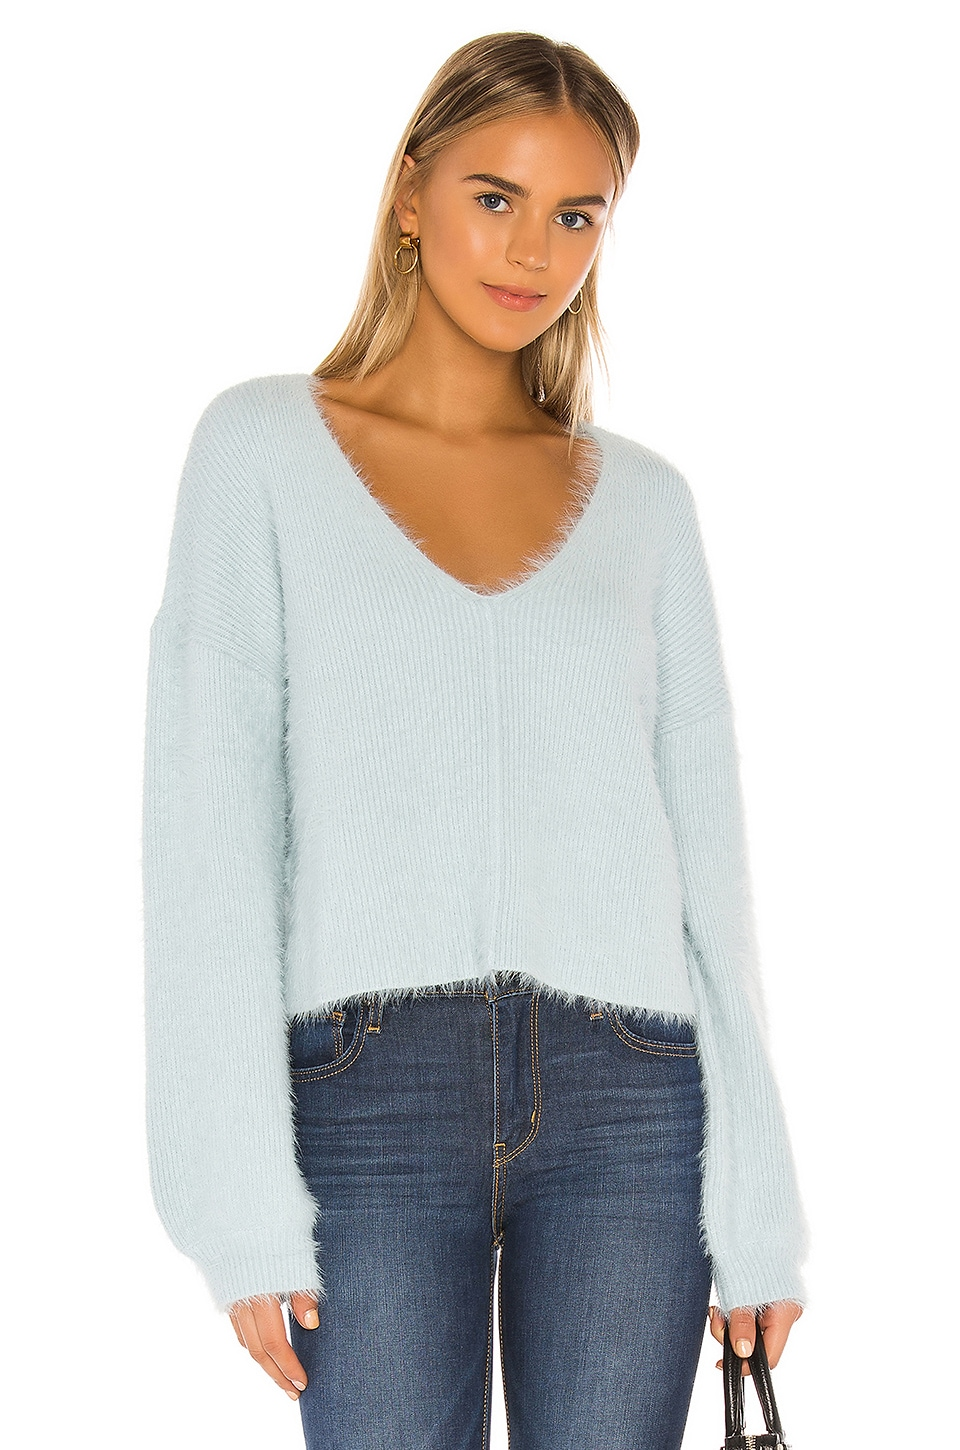 Lovers + Friends Malia V Neck Sweater in Baby Blue